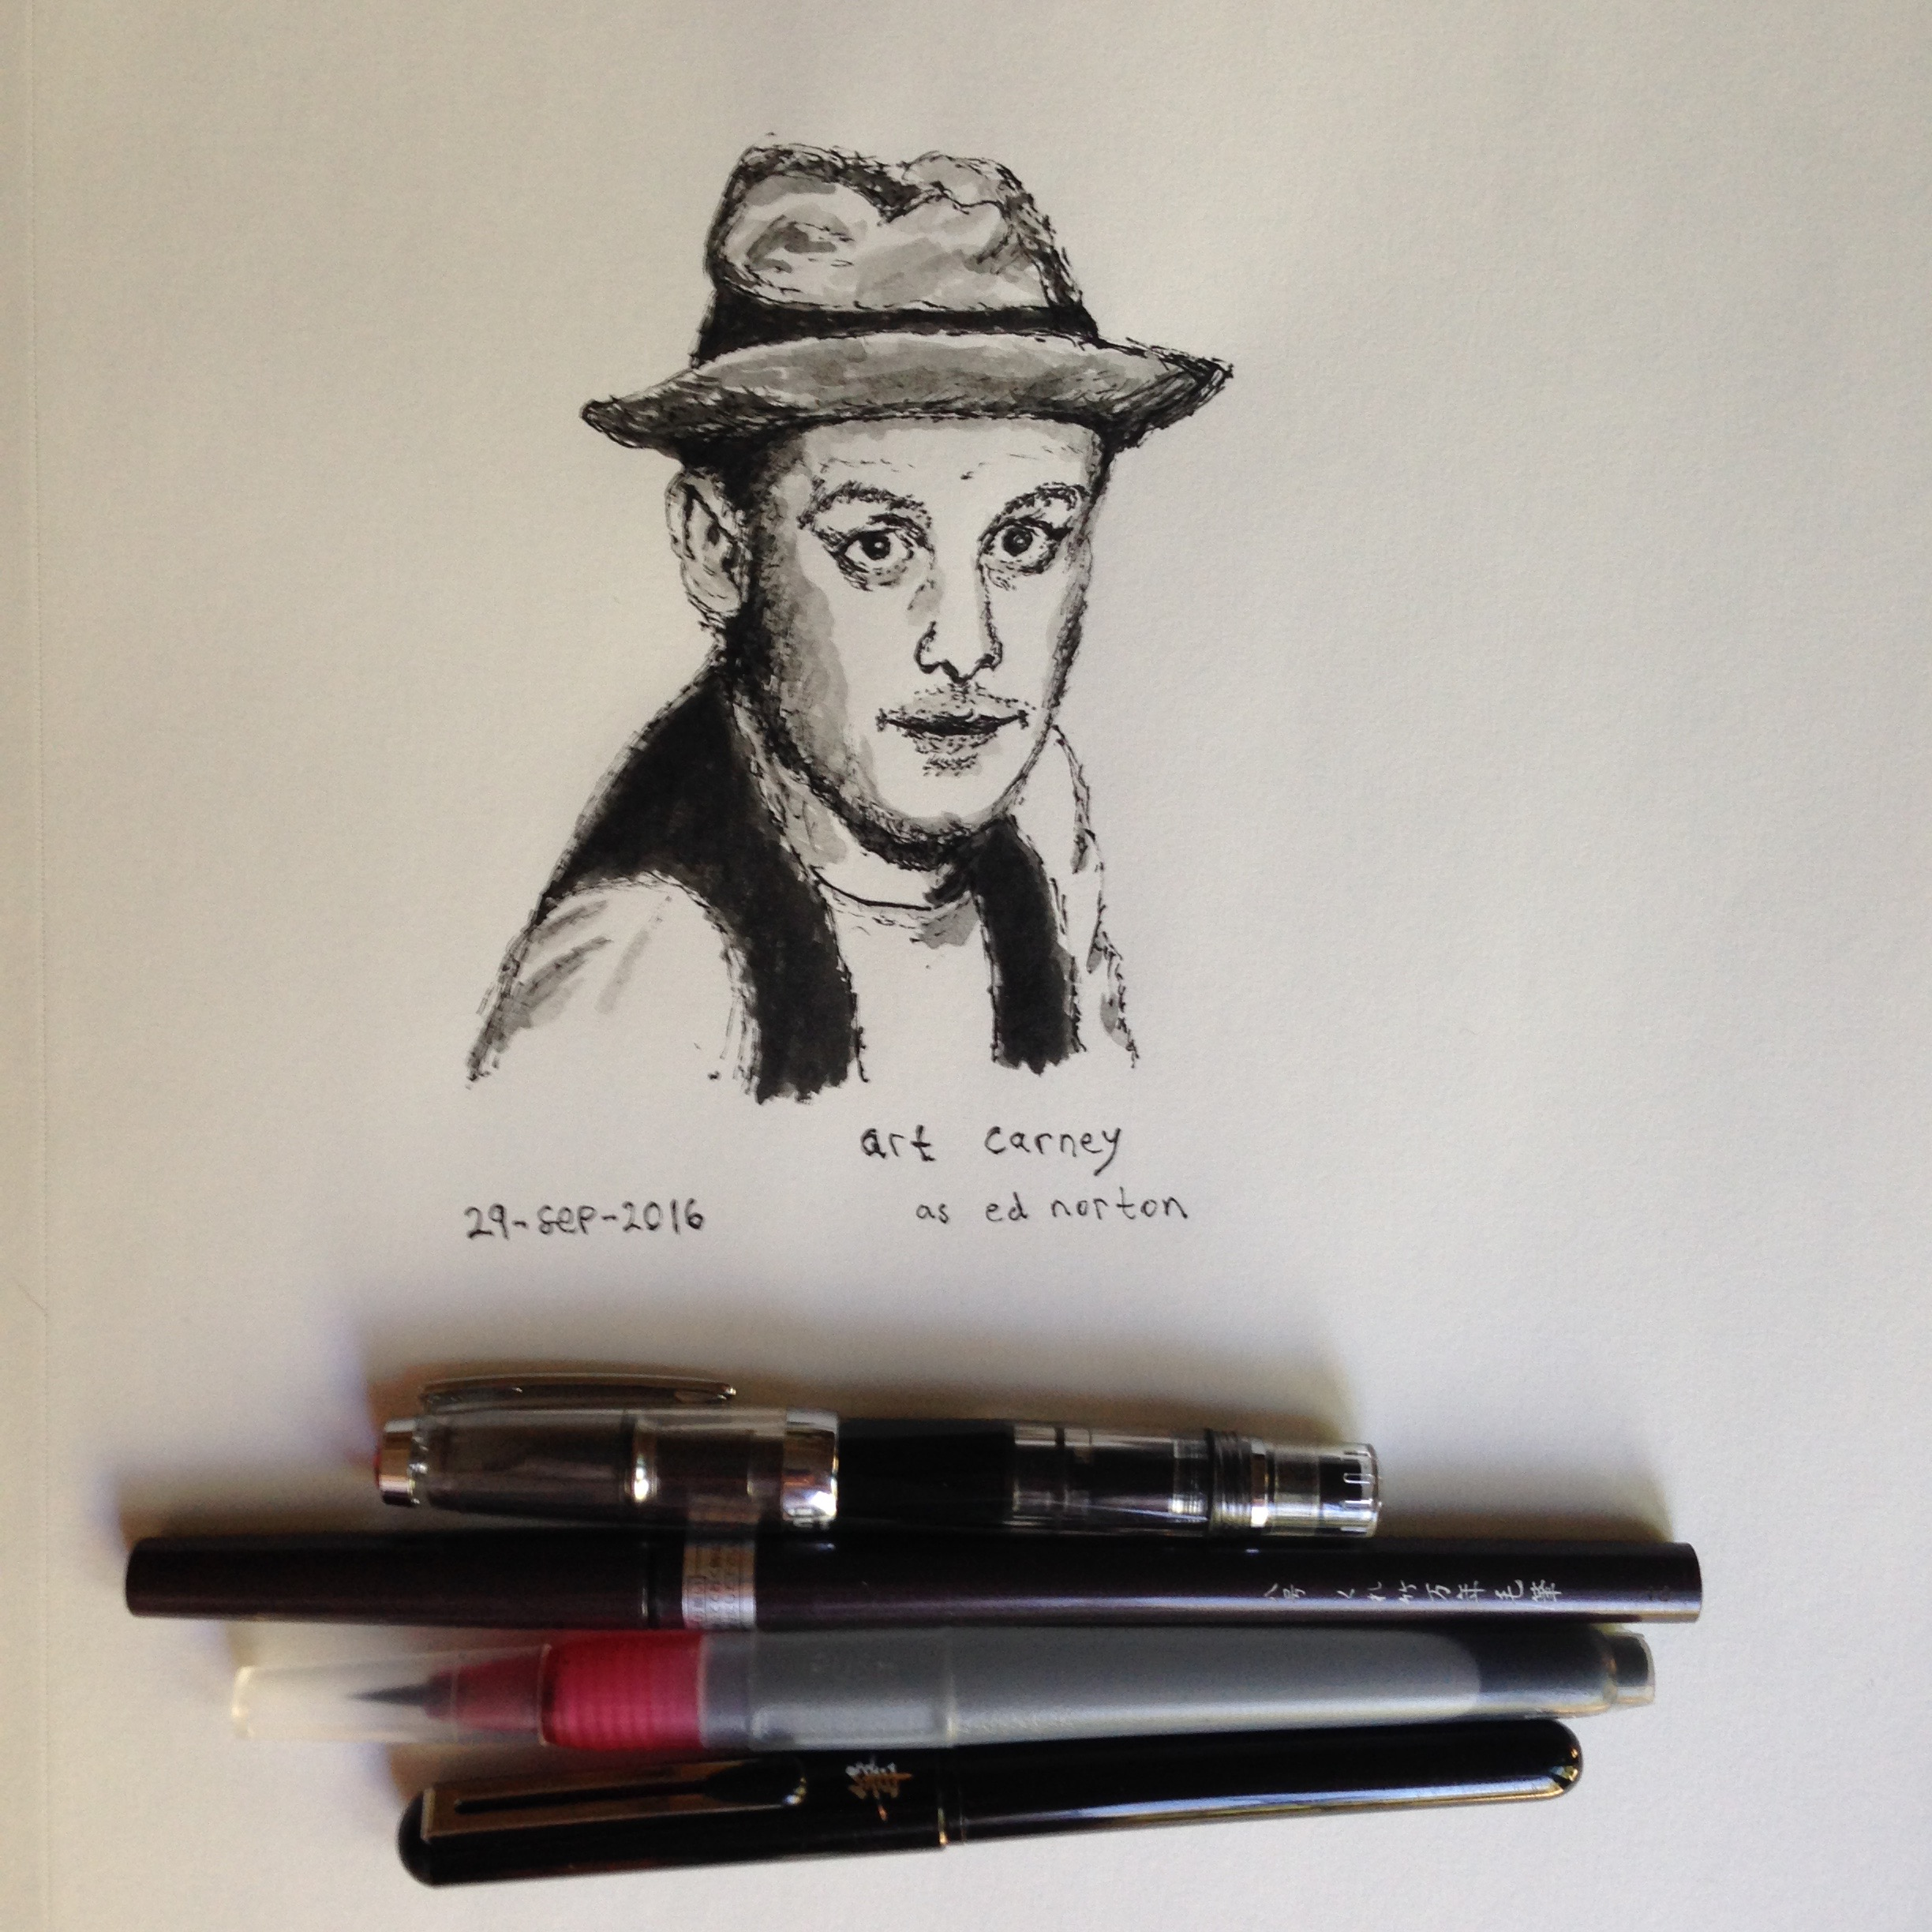 Pen and ink drawing of Art Carney